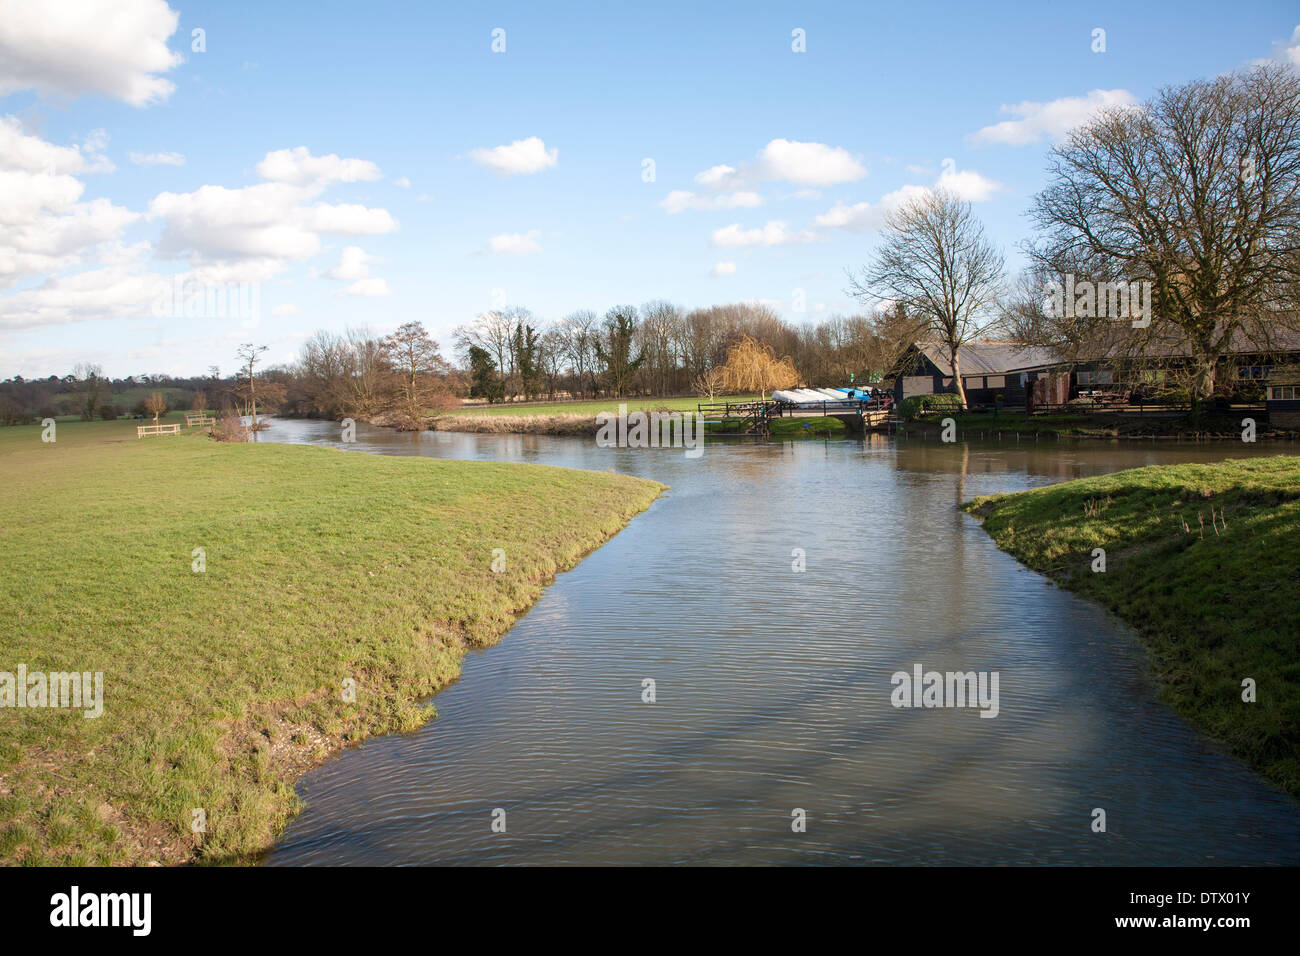 A tributary joining the River Stour at a confluence of waters at Dedham, Essex, England - Stock Image